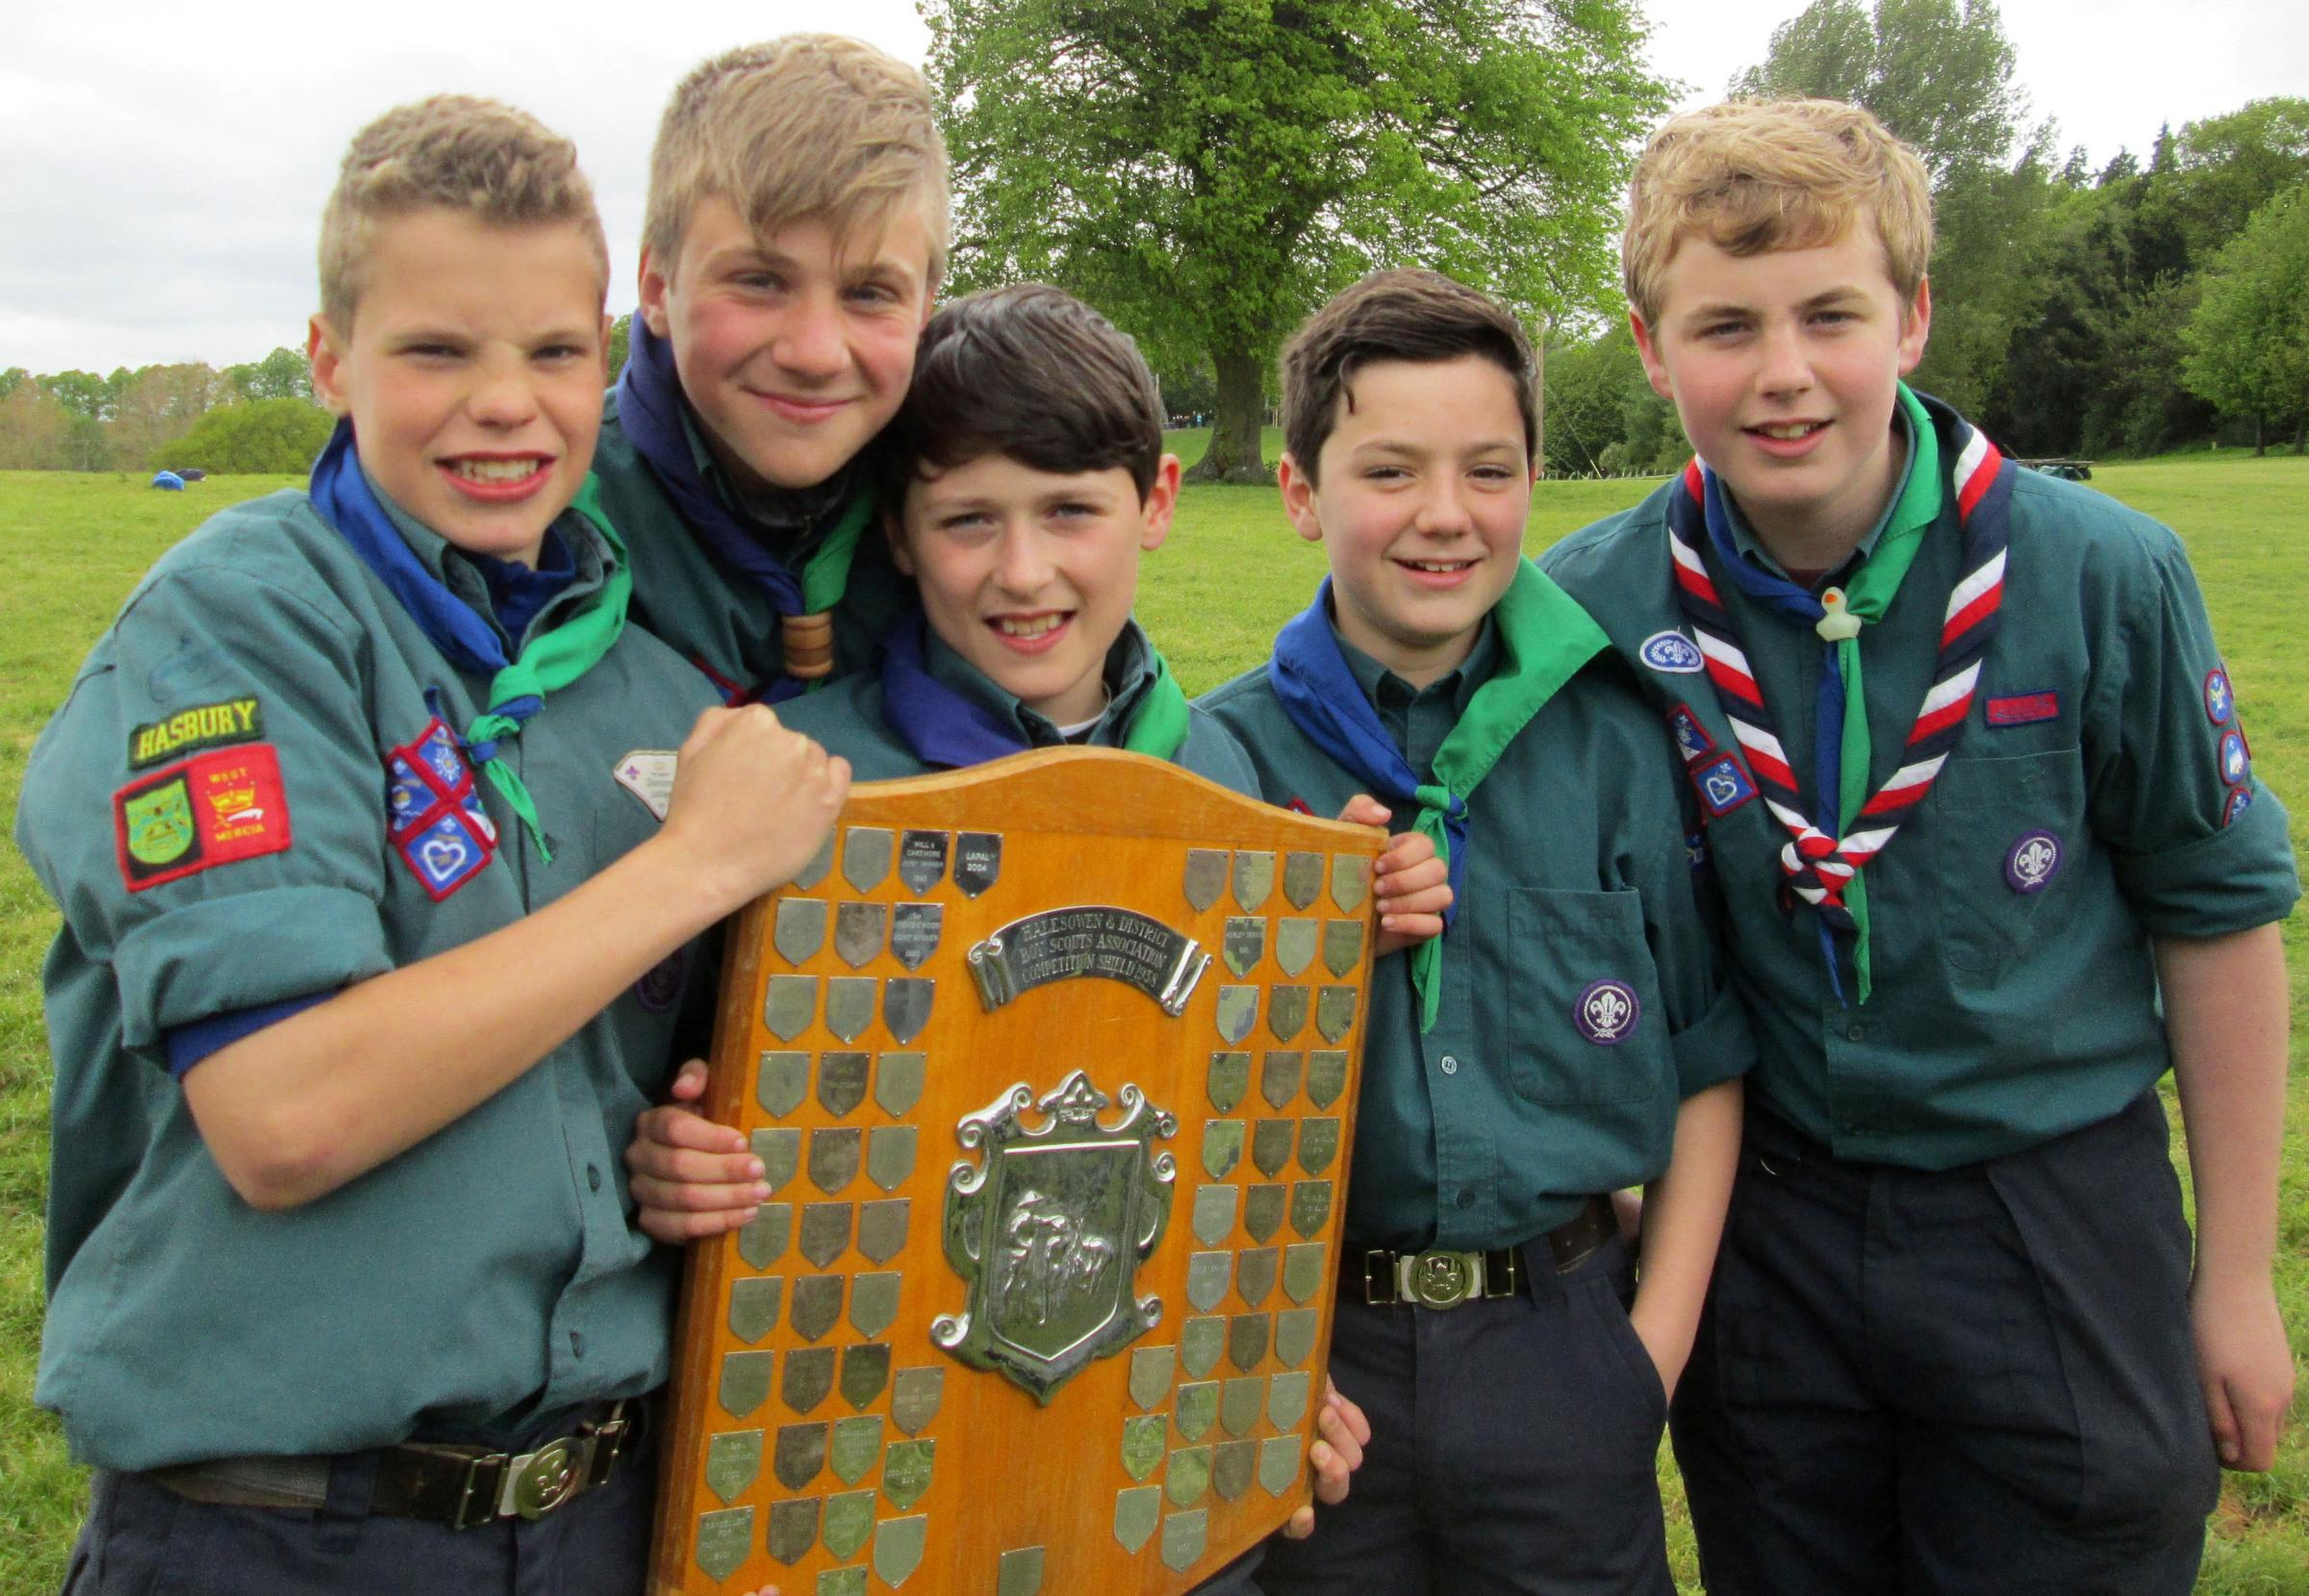 The winning team (from left): Lewis Richards (13), Jack Elliot (14), Harvey Williams (11), Adam Smith (12) and Jack Parton (14).